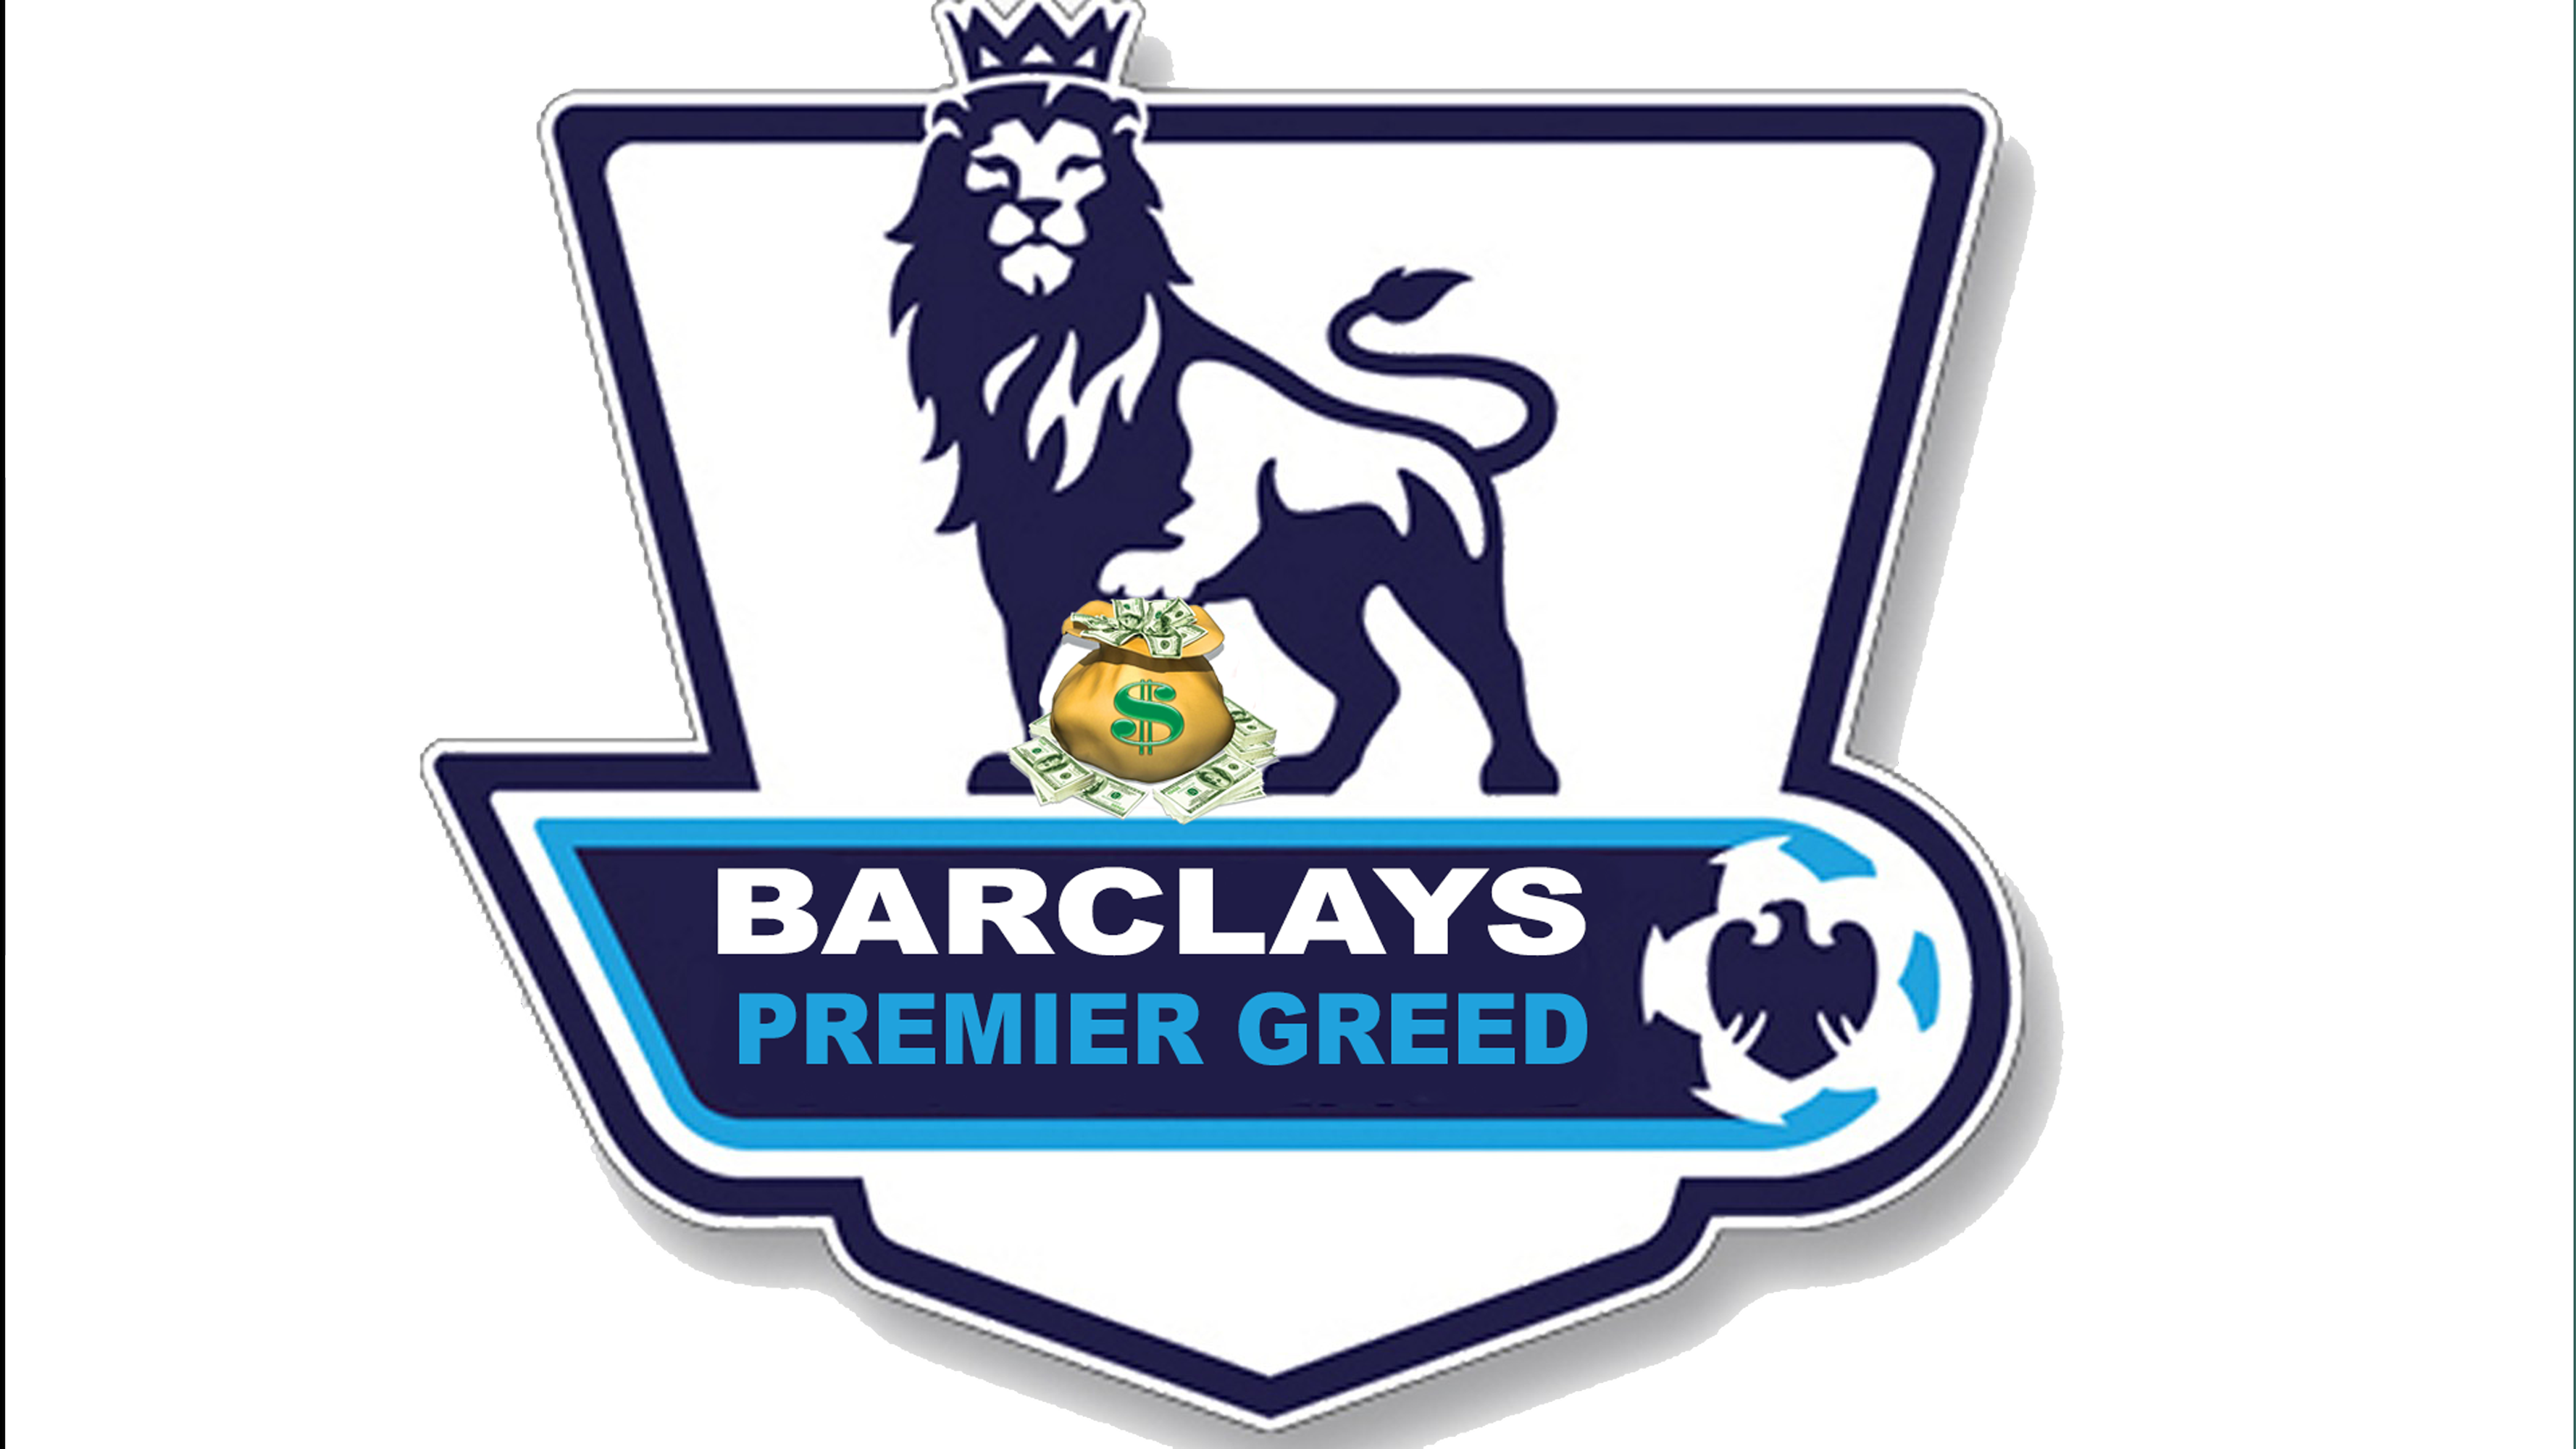 Download Premier Greed 3 Premier League Png Fantasy Premier League Png Png Image With No Background Pngkey Com